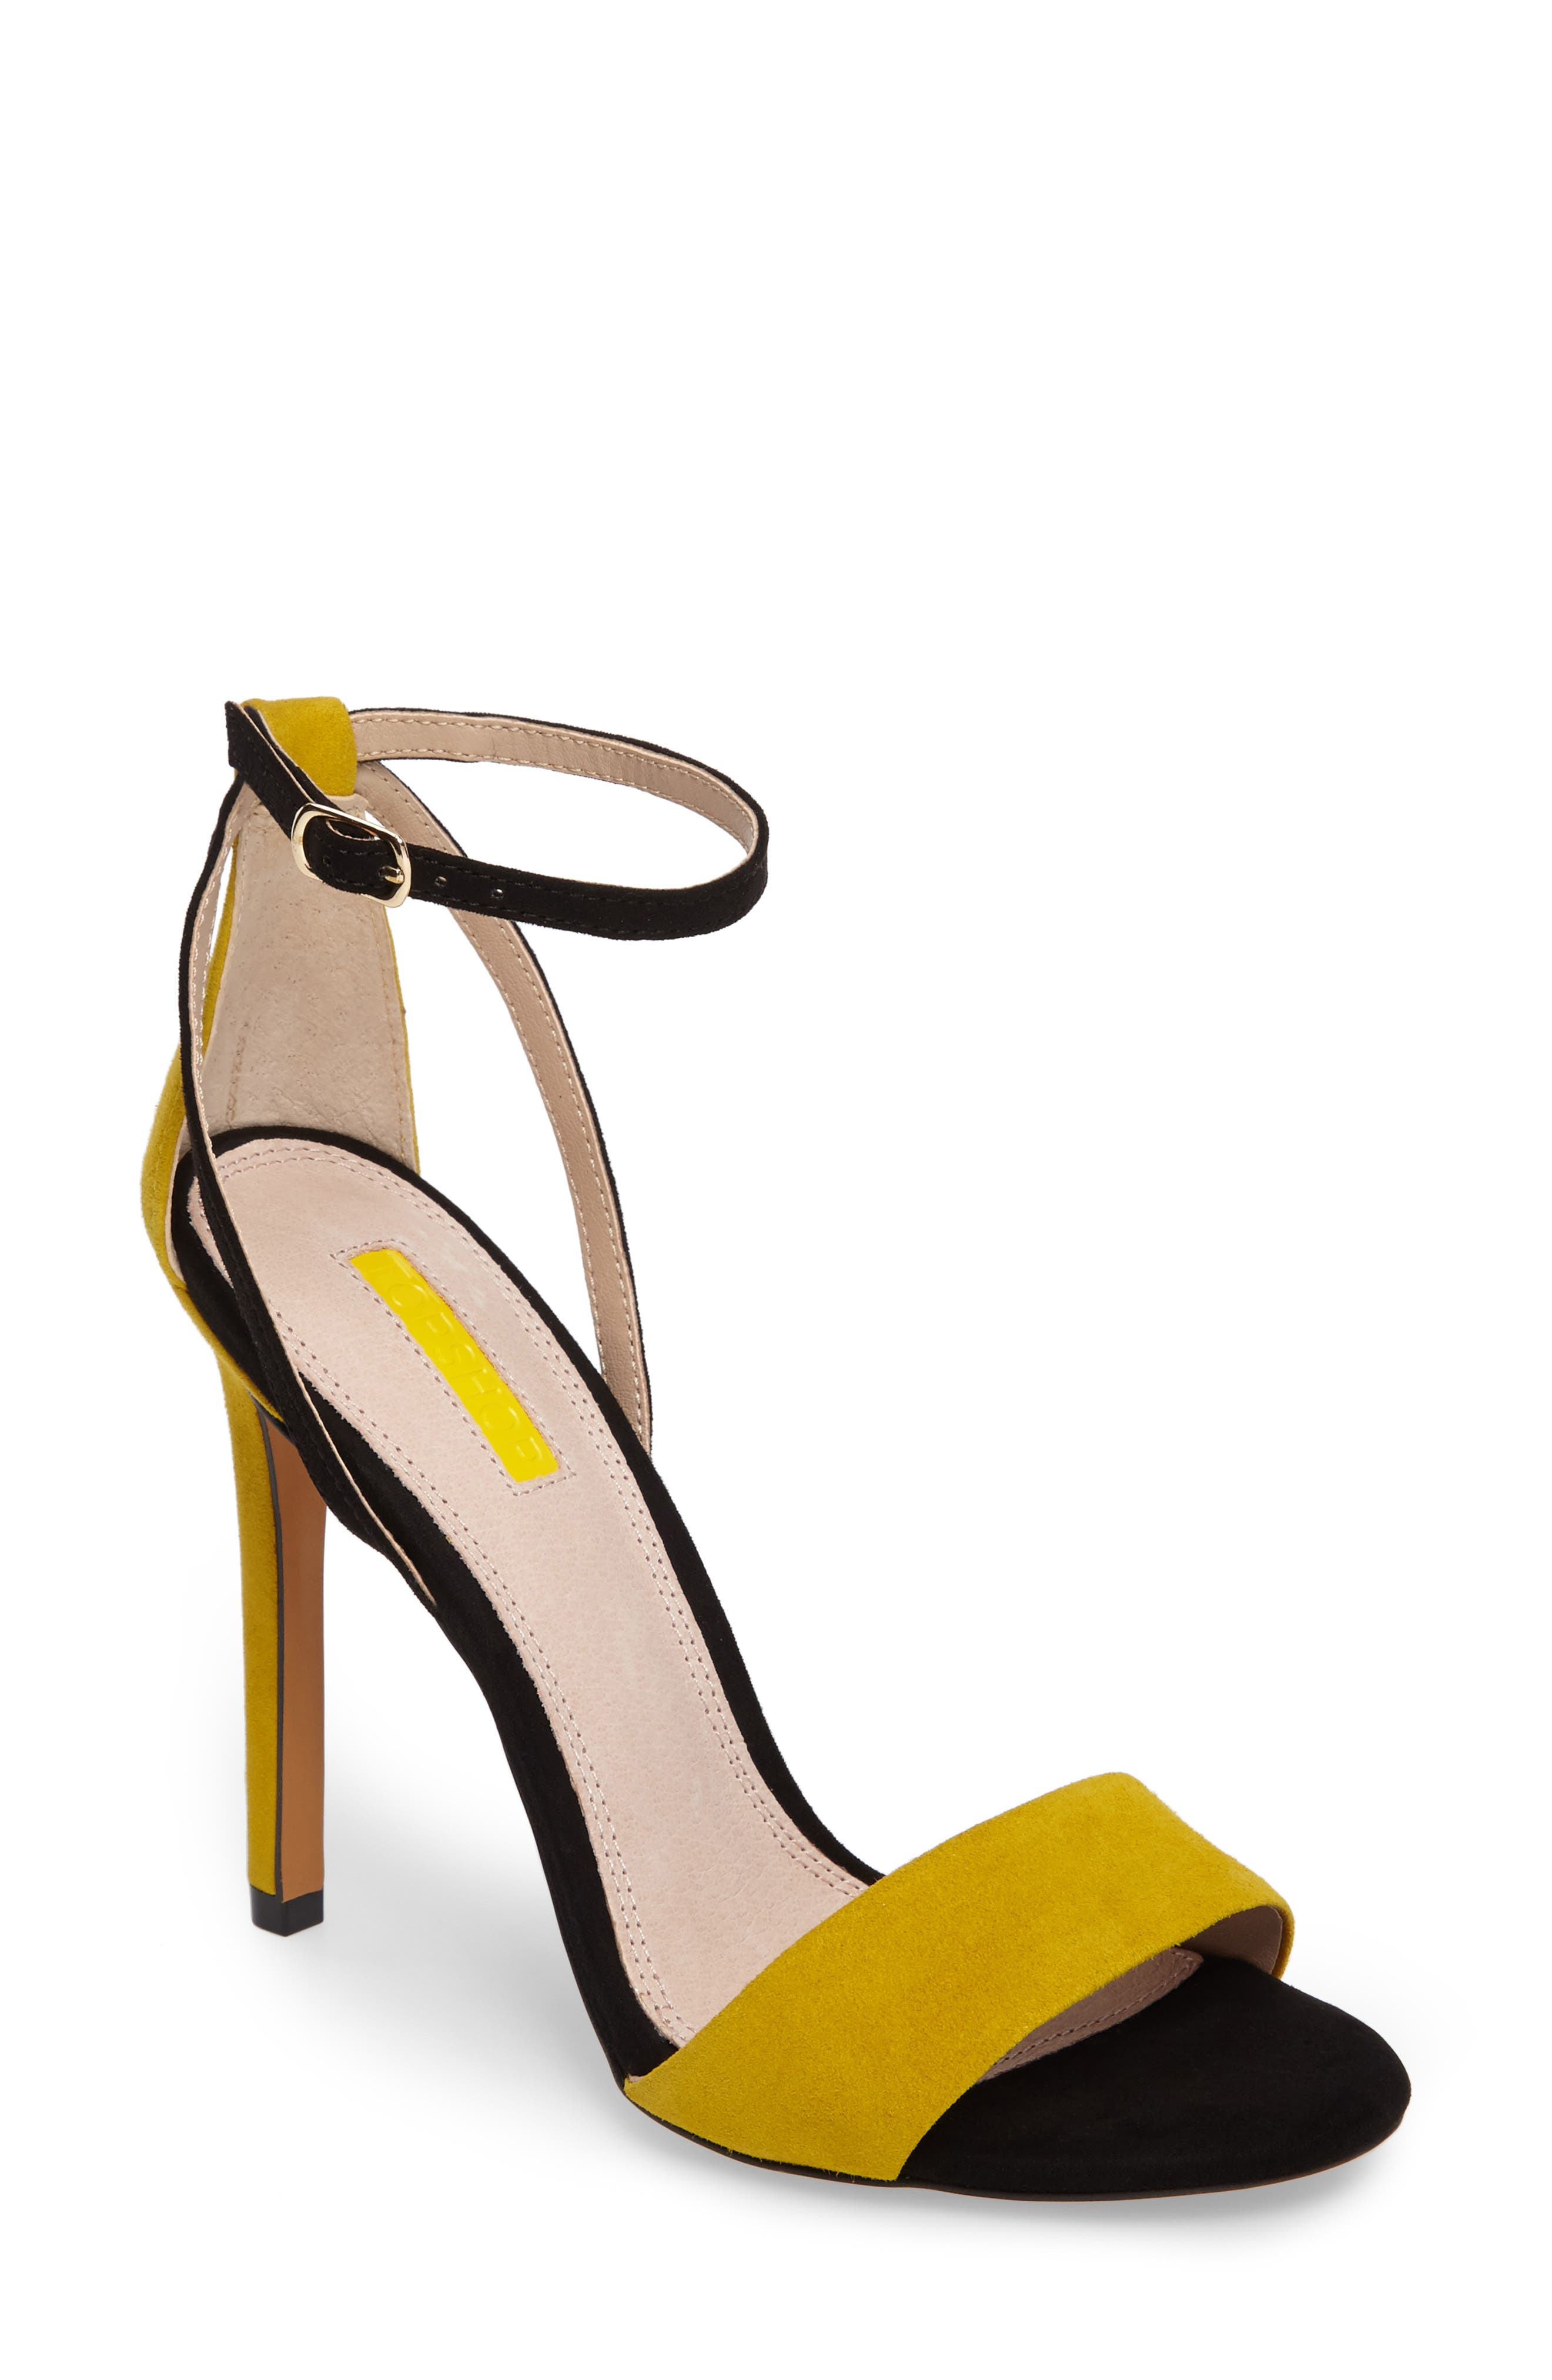 Main Image - Topshop Raphael New Genuine Calf Hair Sandal (Women)